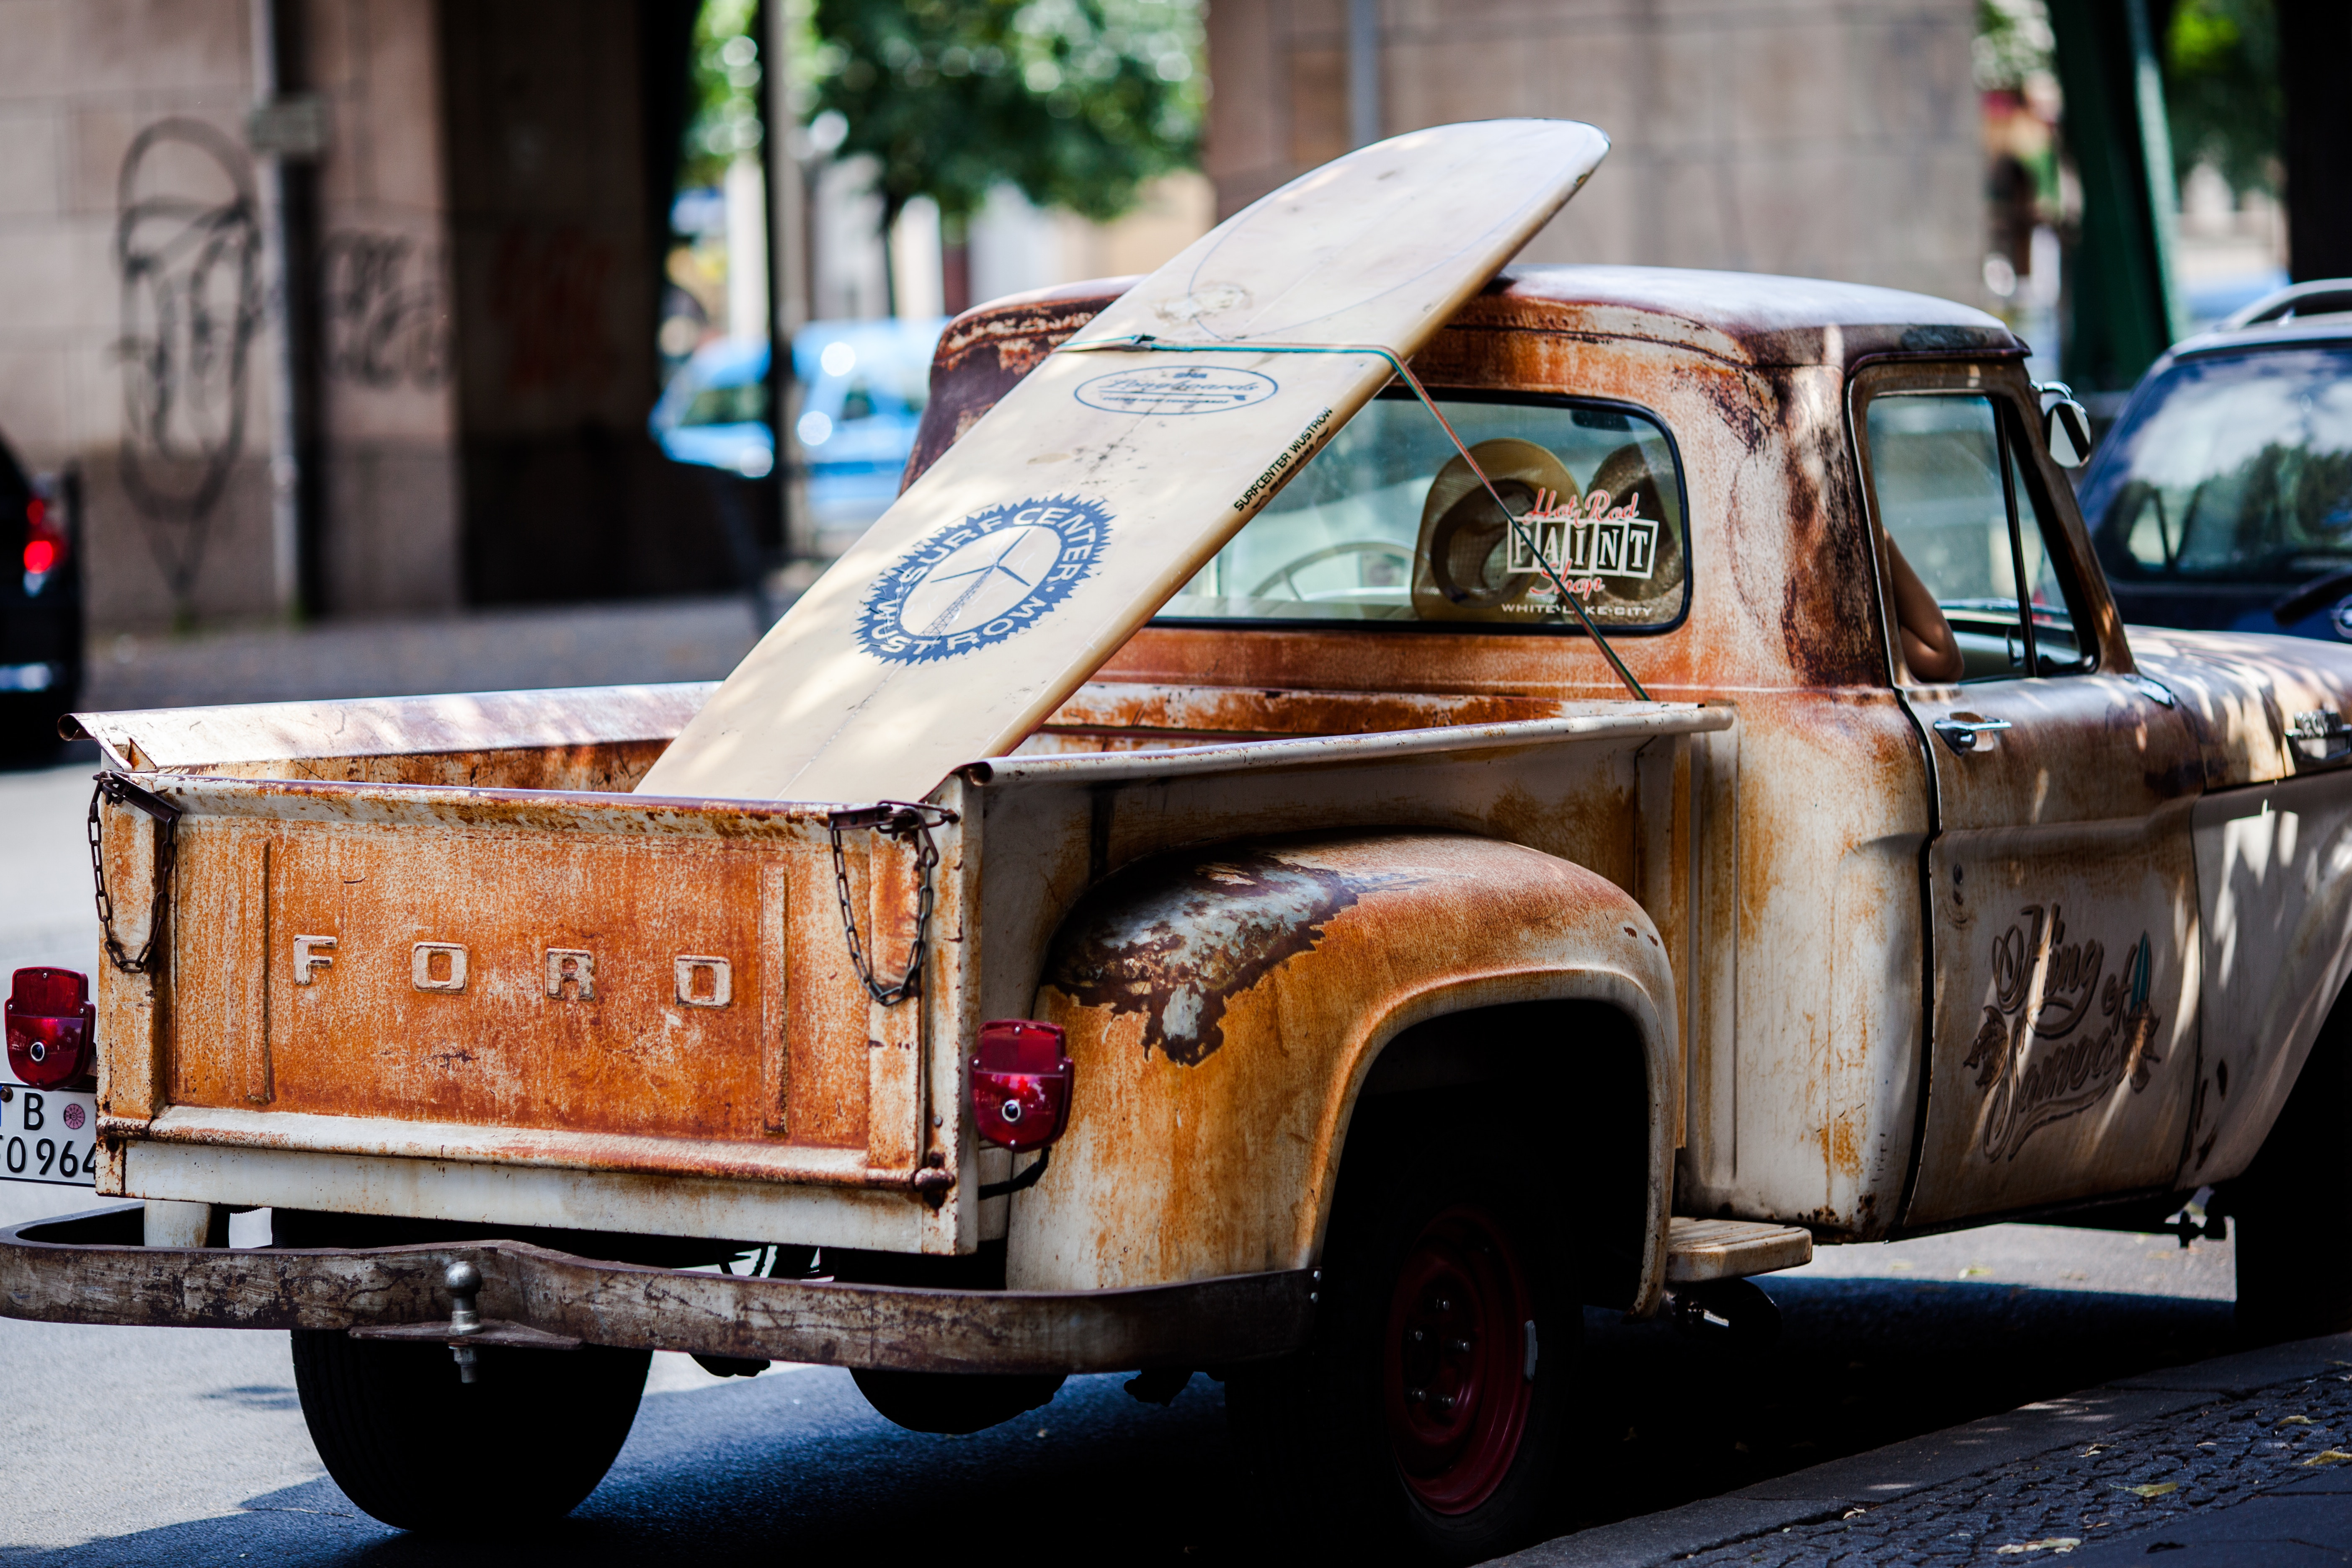 Image shows a very rusty Ford truck with a surfboard in the back.